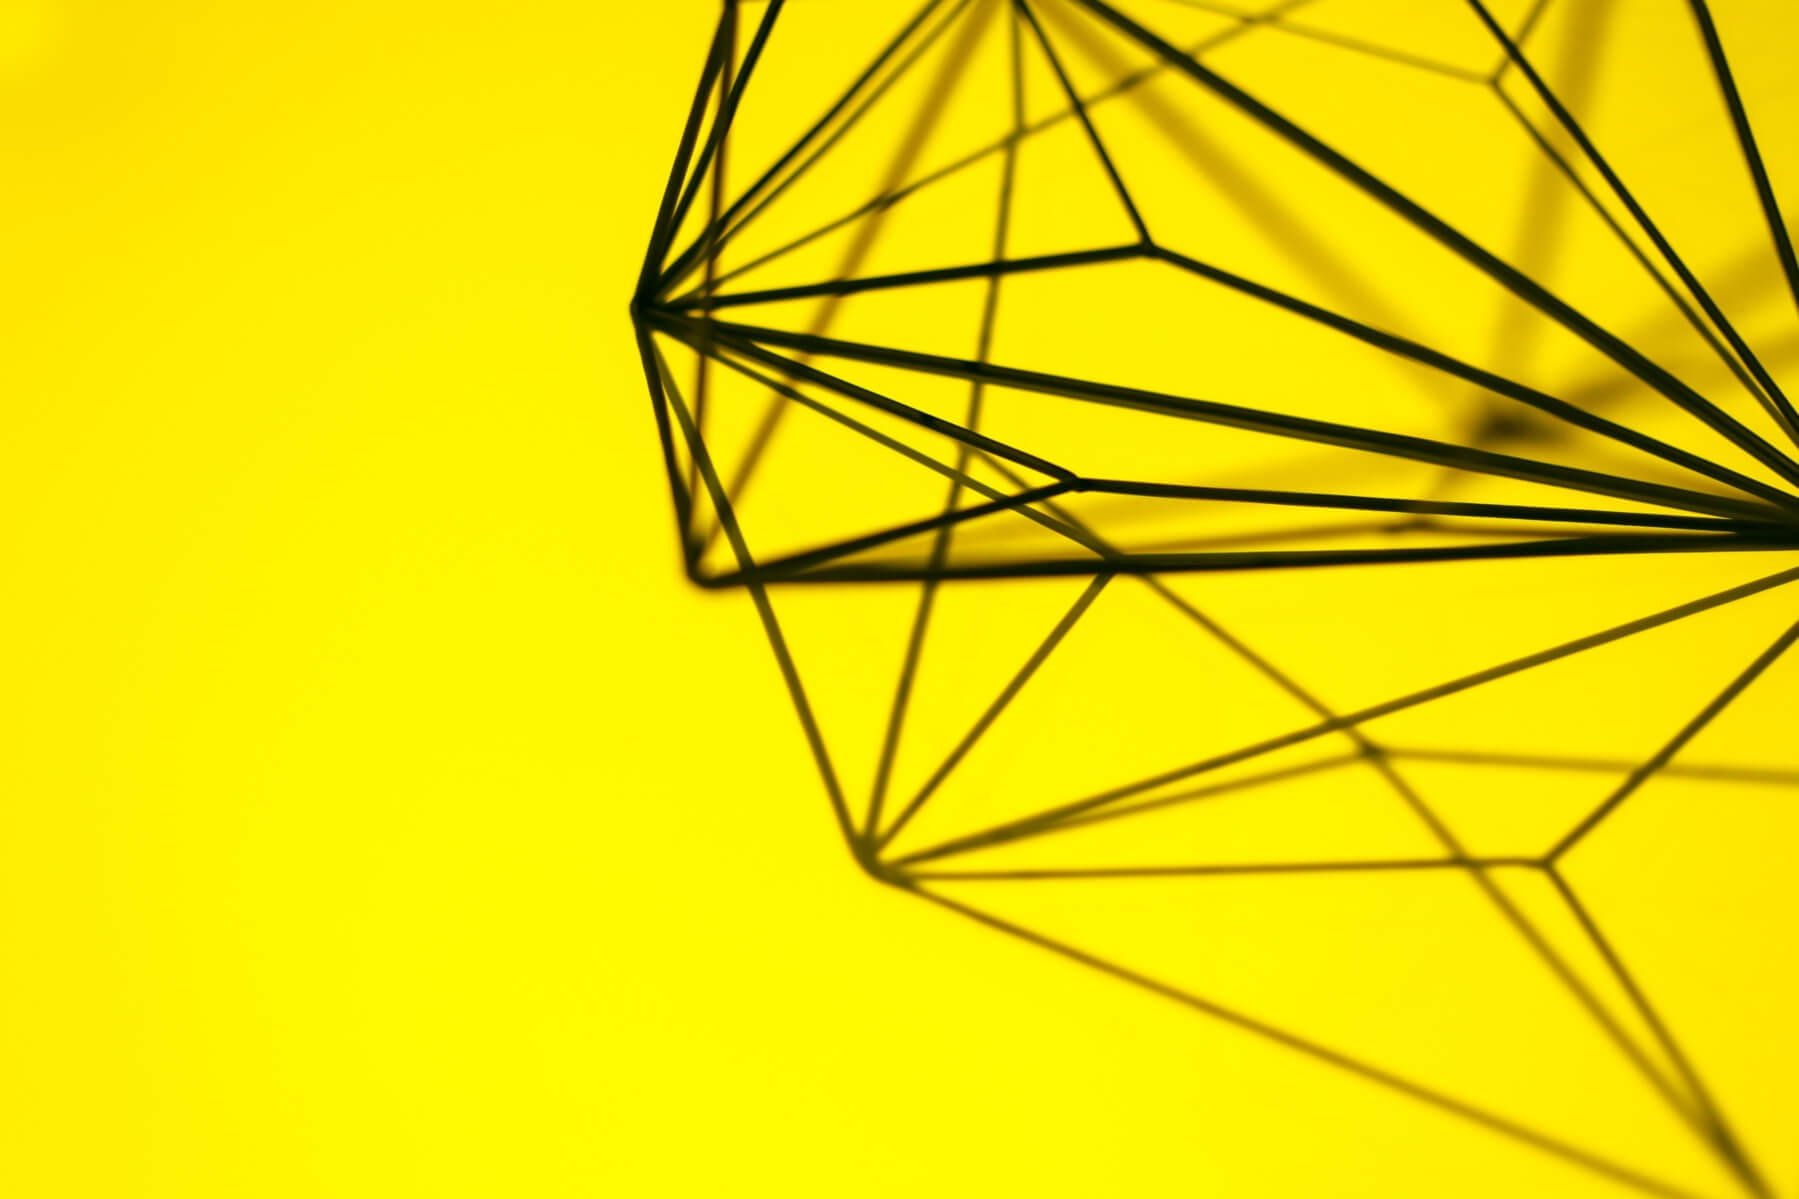 metal decoration on yellow background